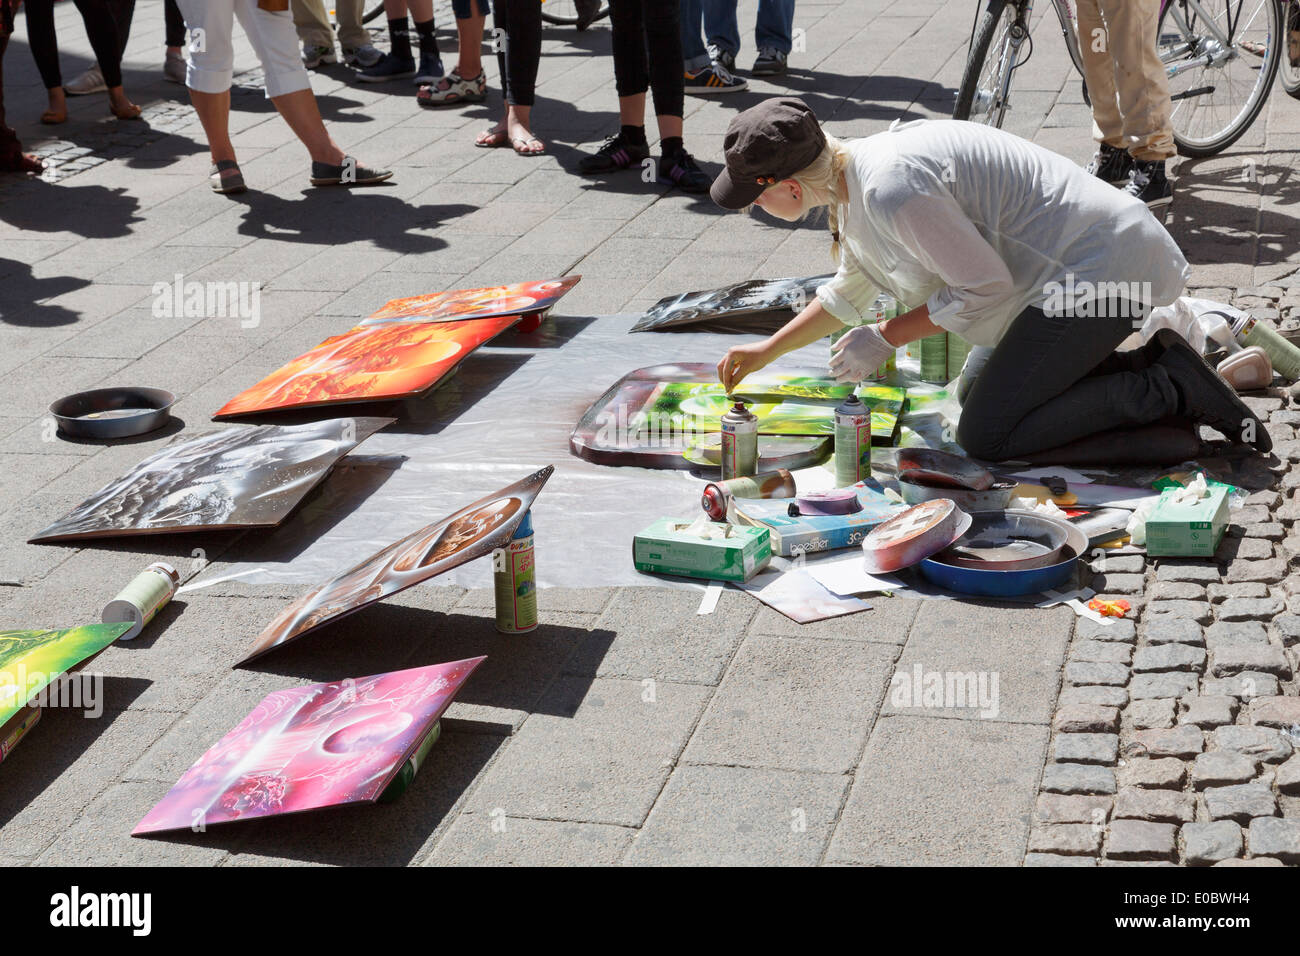 Spray paint street artist painting pictures to sell with an audience watching in Copenhagen, Denmark, Scandinavia, Europe. - Stock Image